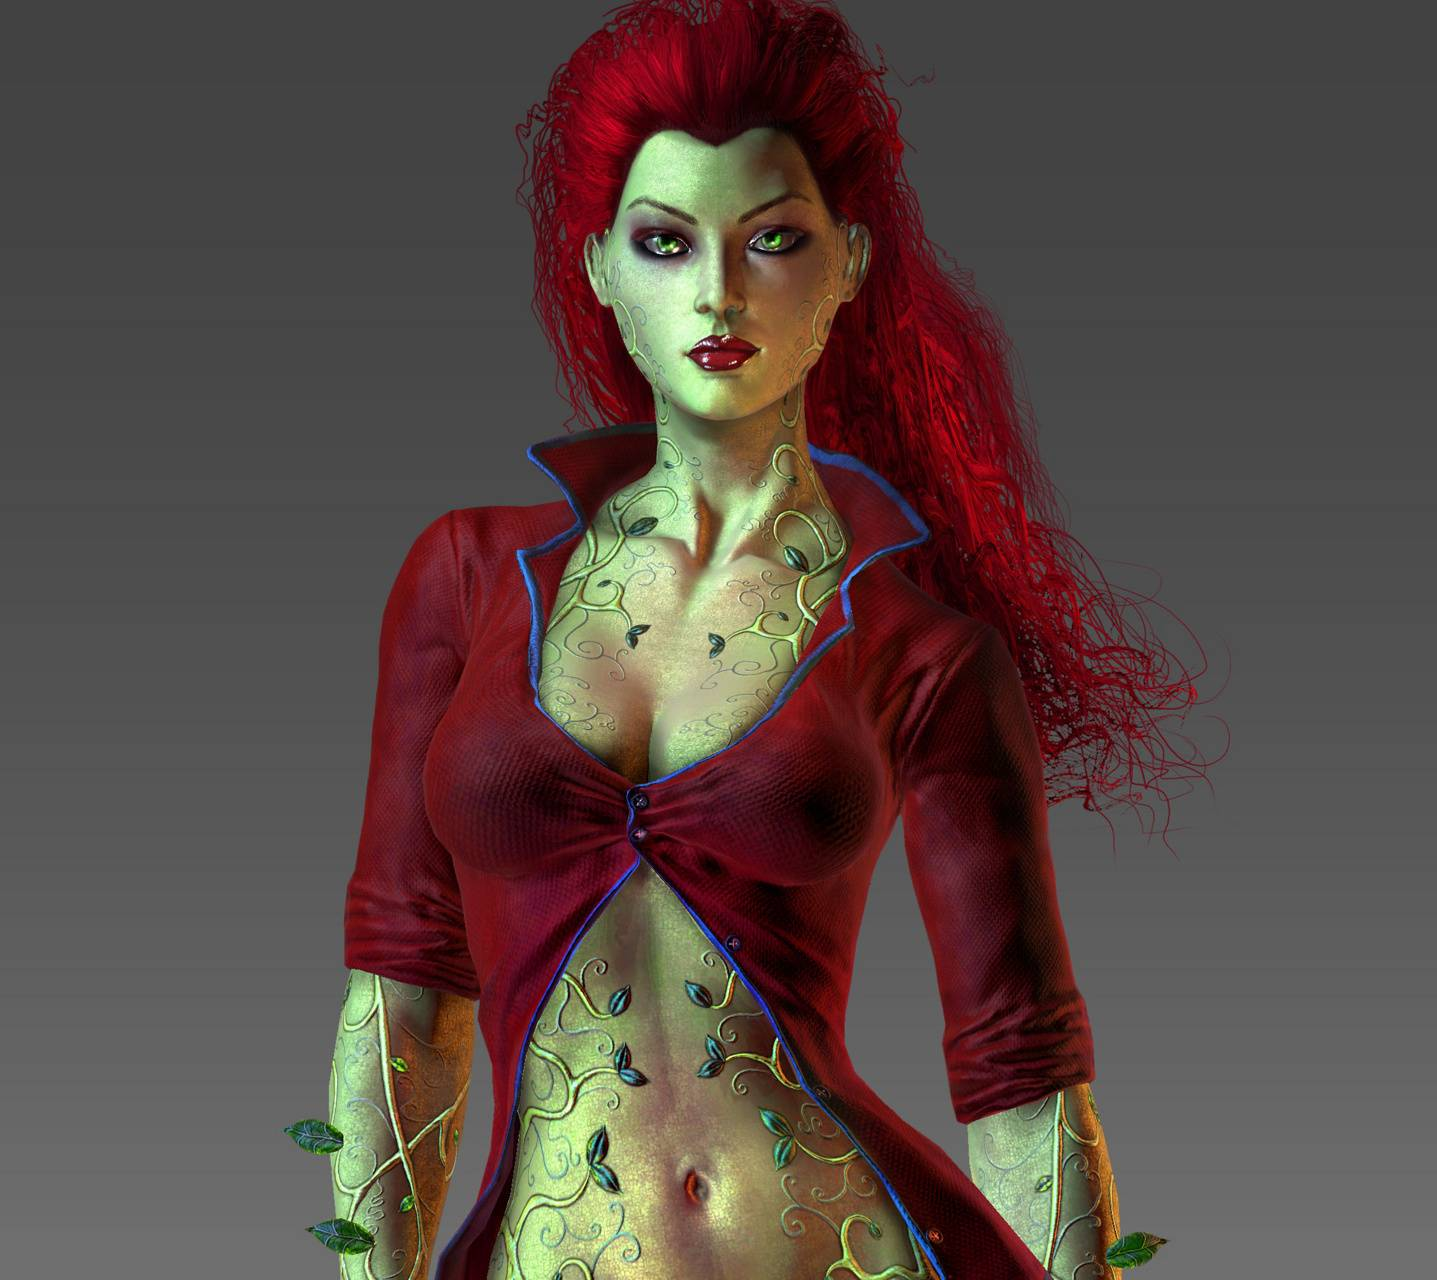 Poison Ivy Wallpaper By Vikina19 A2 Free On Zedge